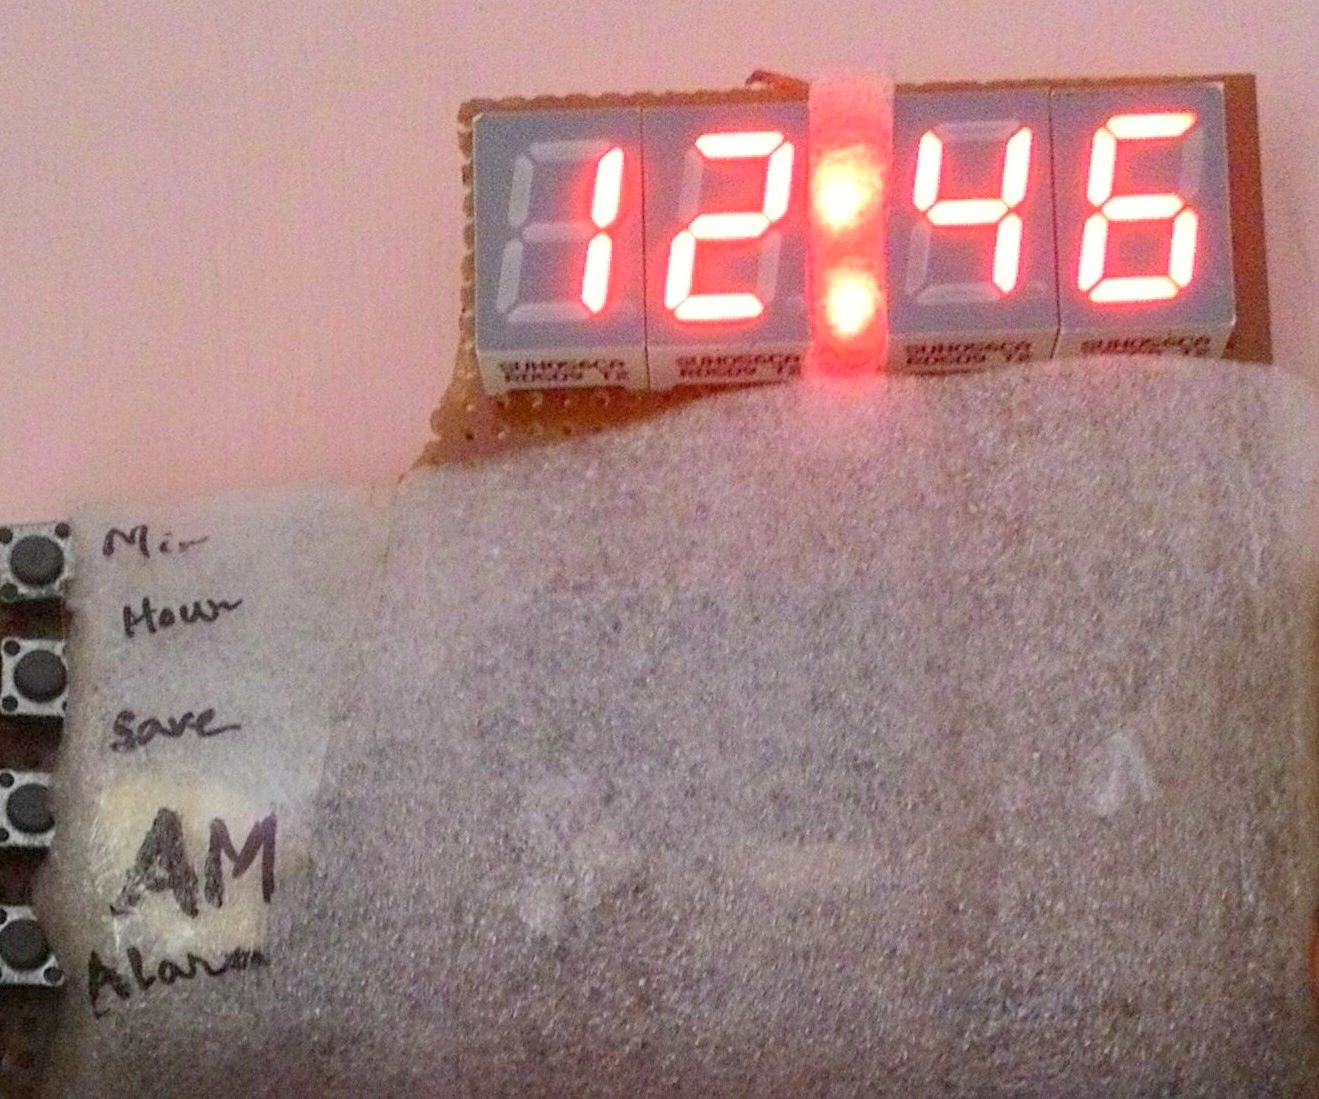 DIY Digital Clock Using Microcontroller (AT89S52 Without RTC Circuit)